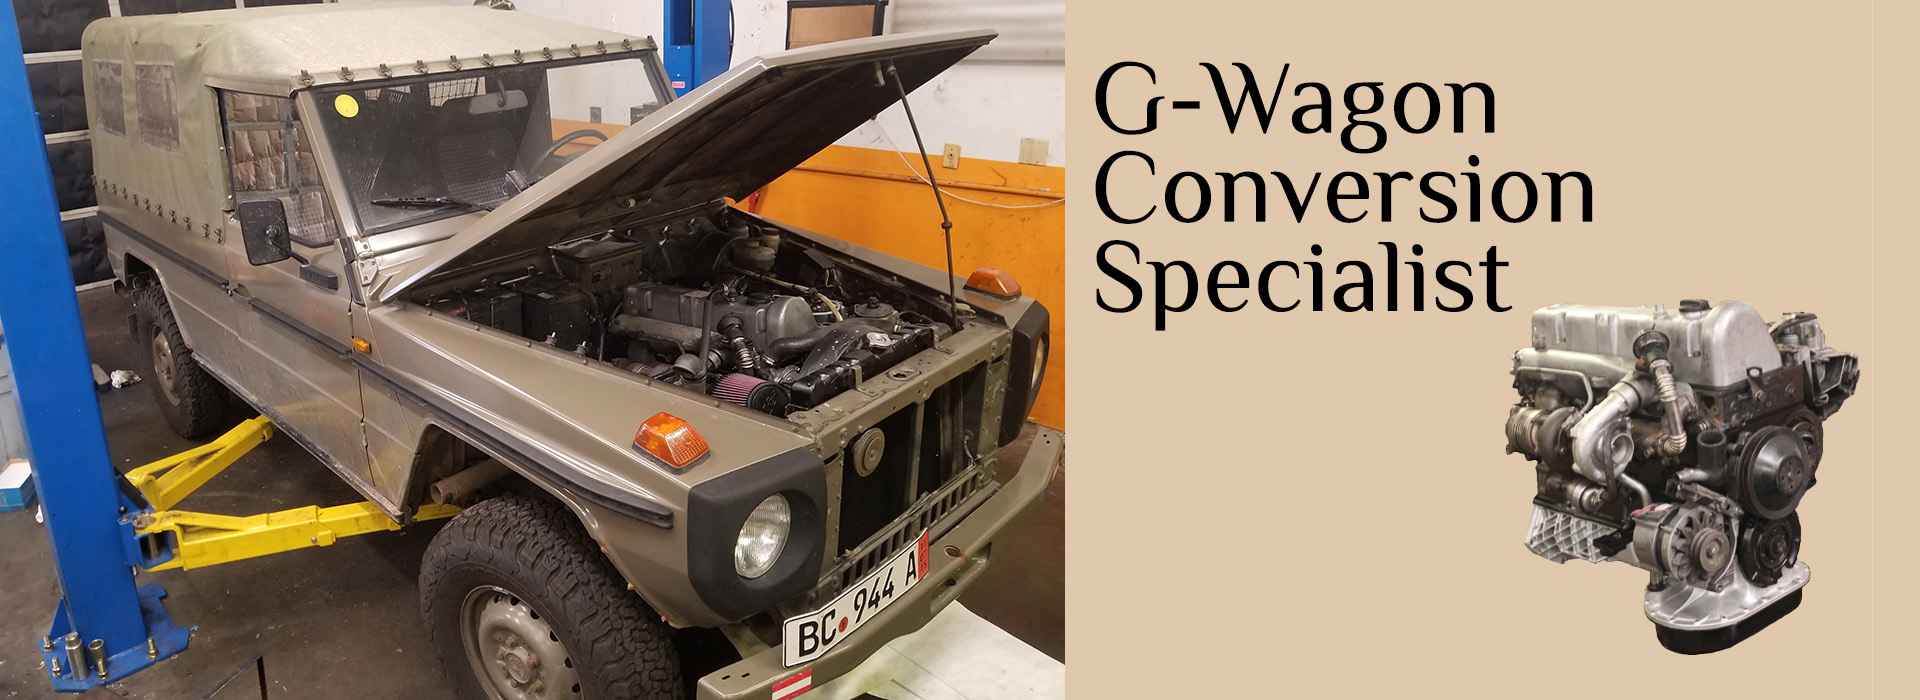 Mercedes G-Wagon Conversions